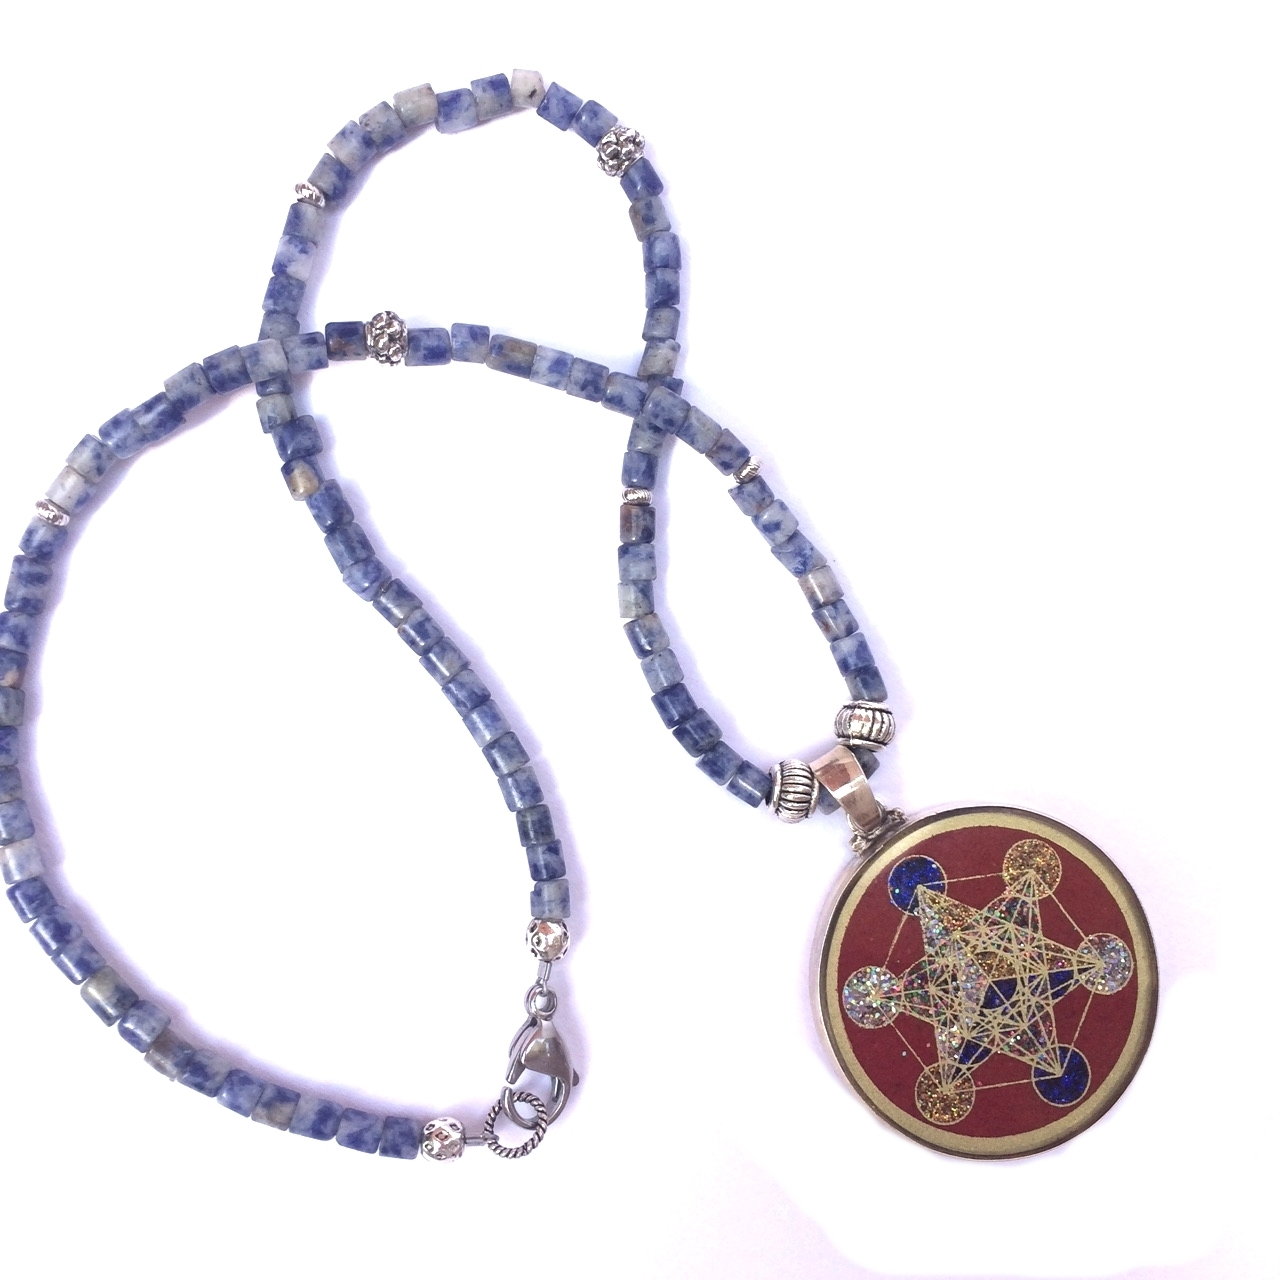 en sodalite necklace amberhoeve